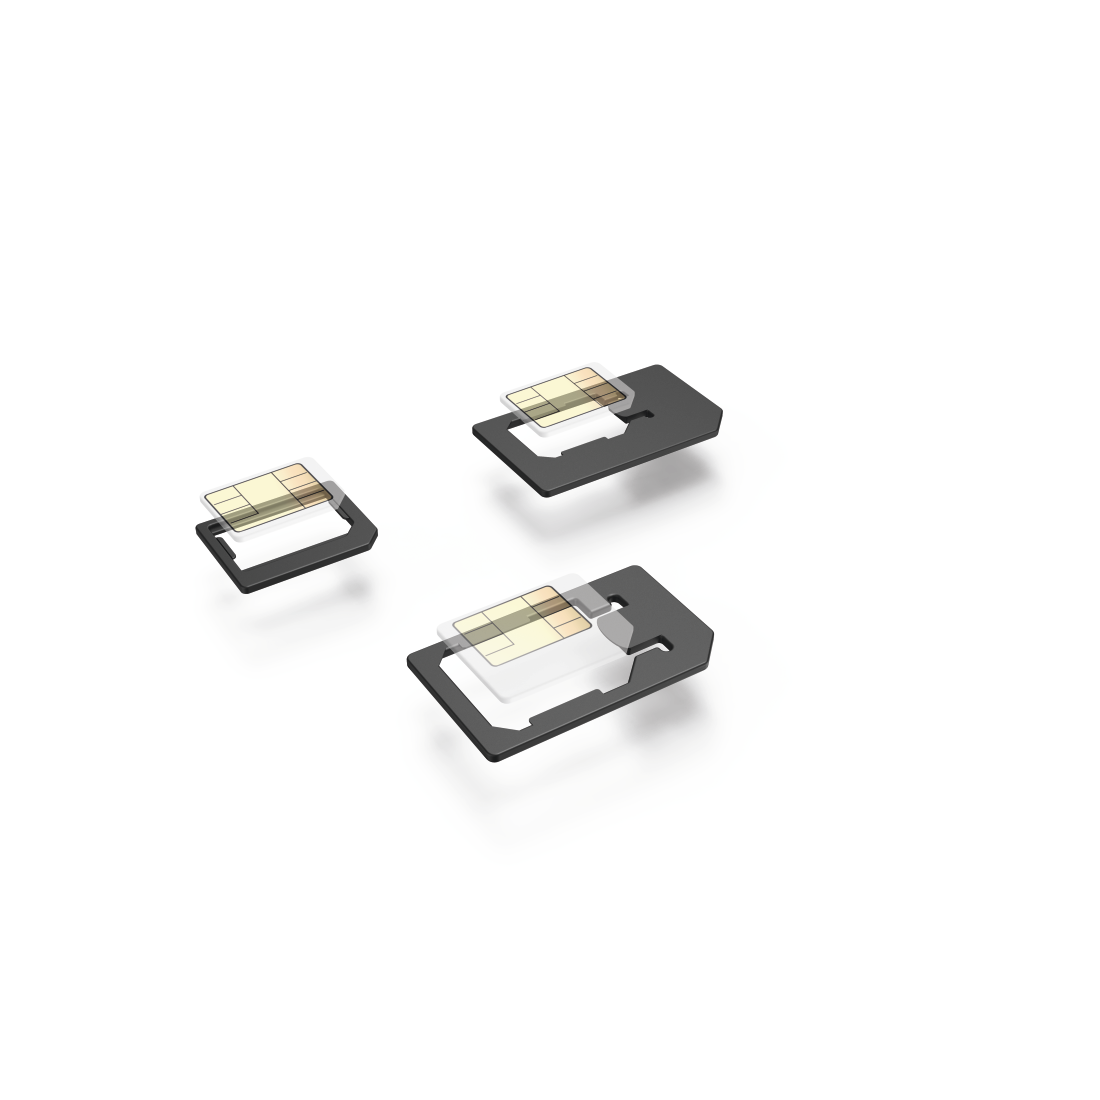 abx High-Res Image - Hama, SIM Card Adapter, 5-Part Set